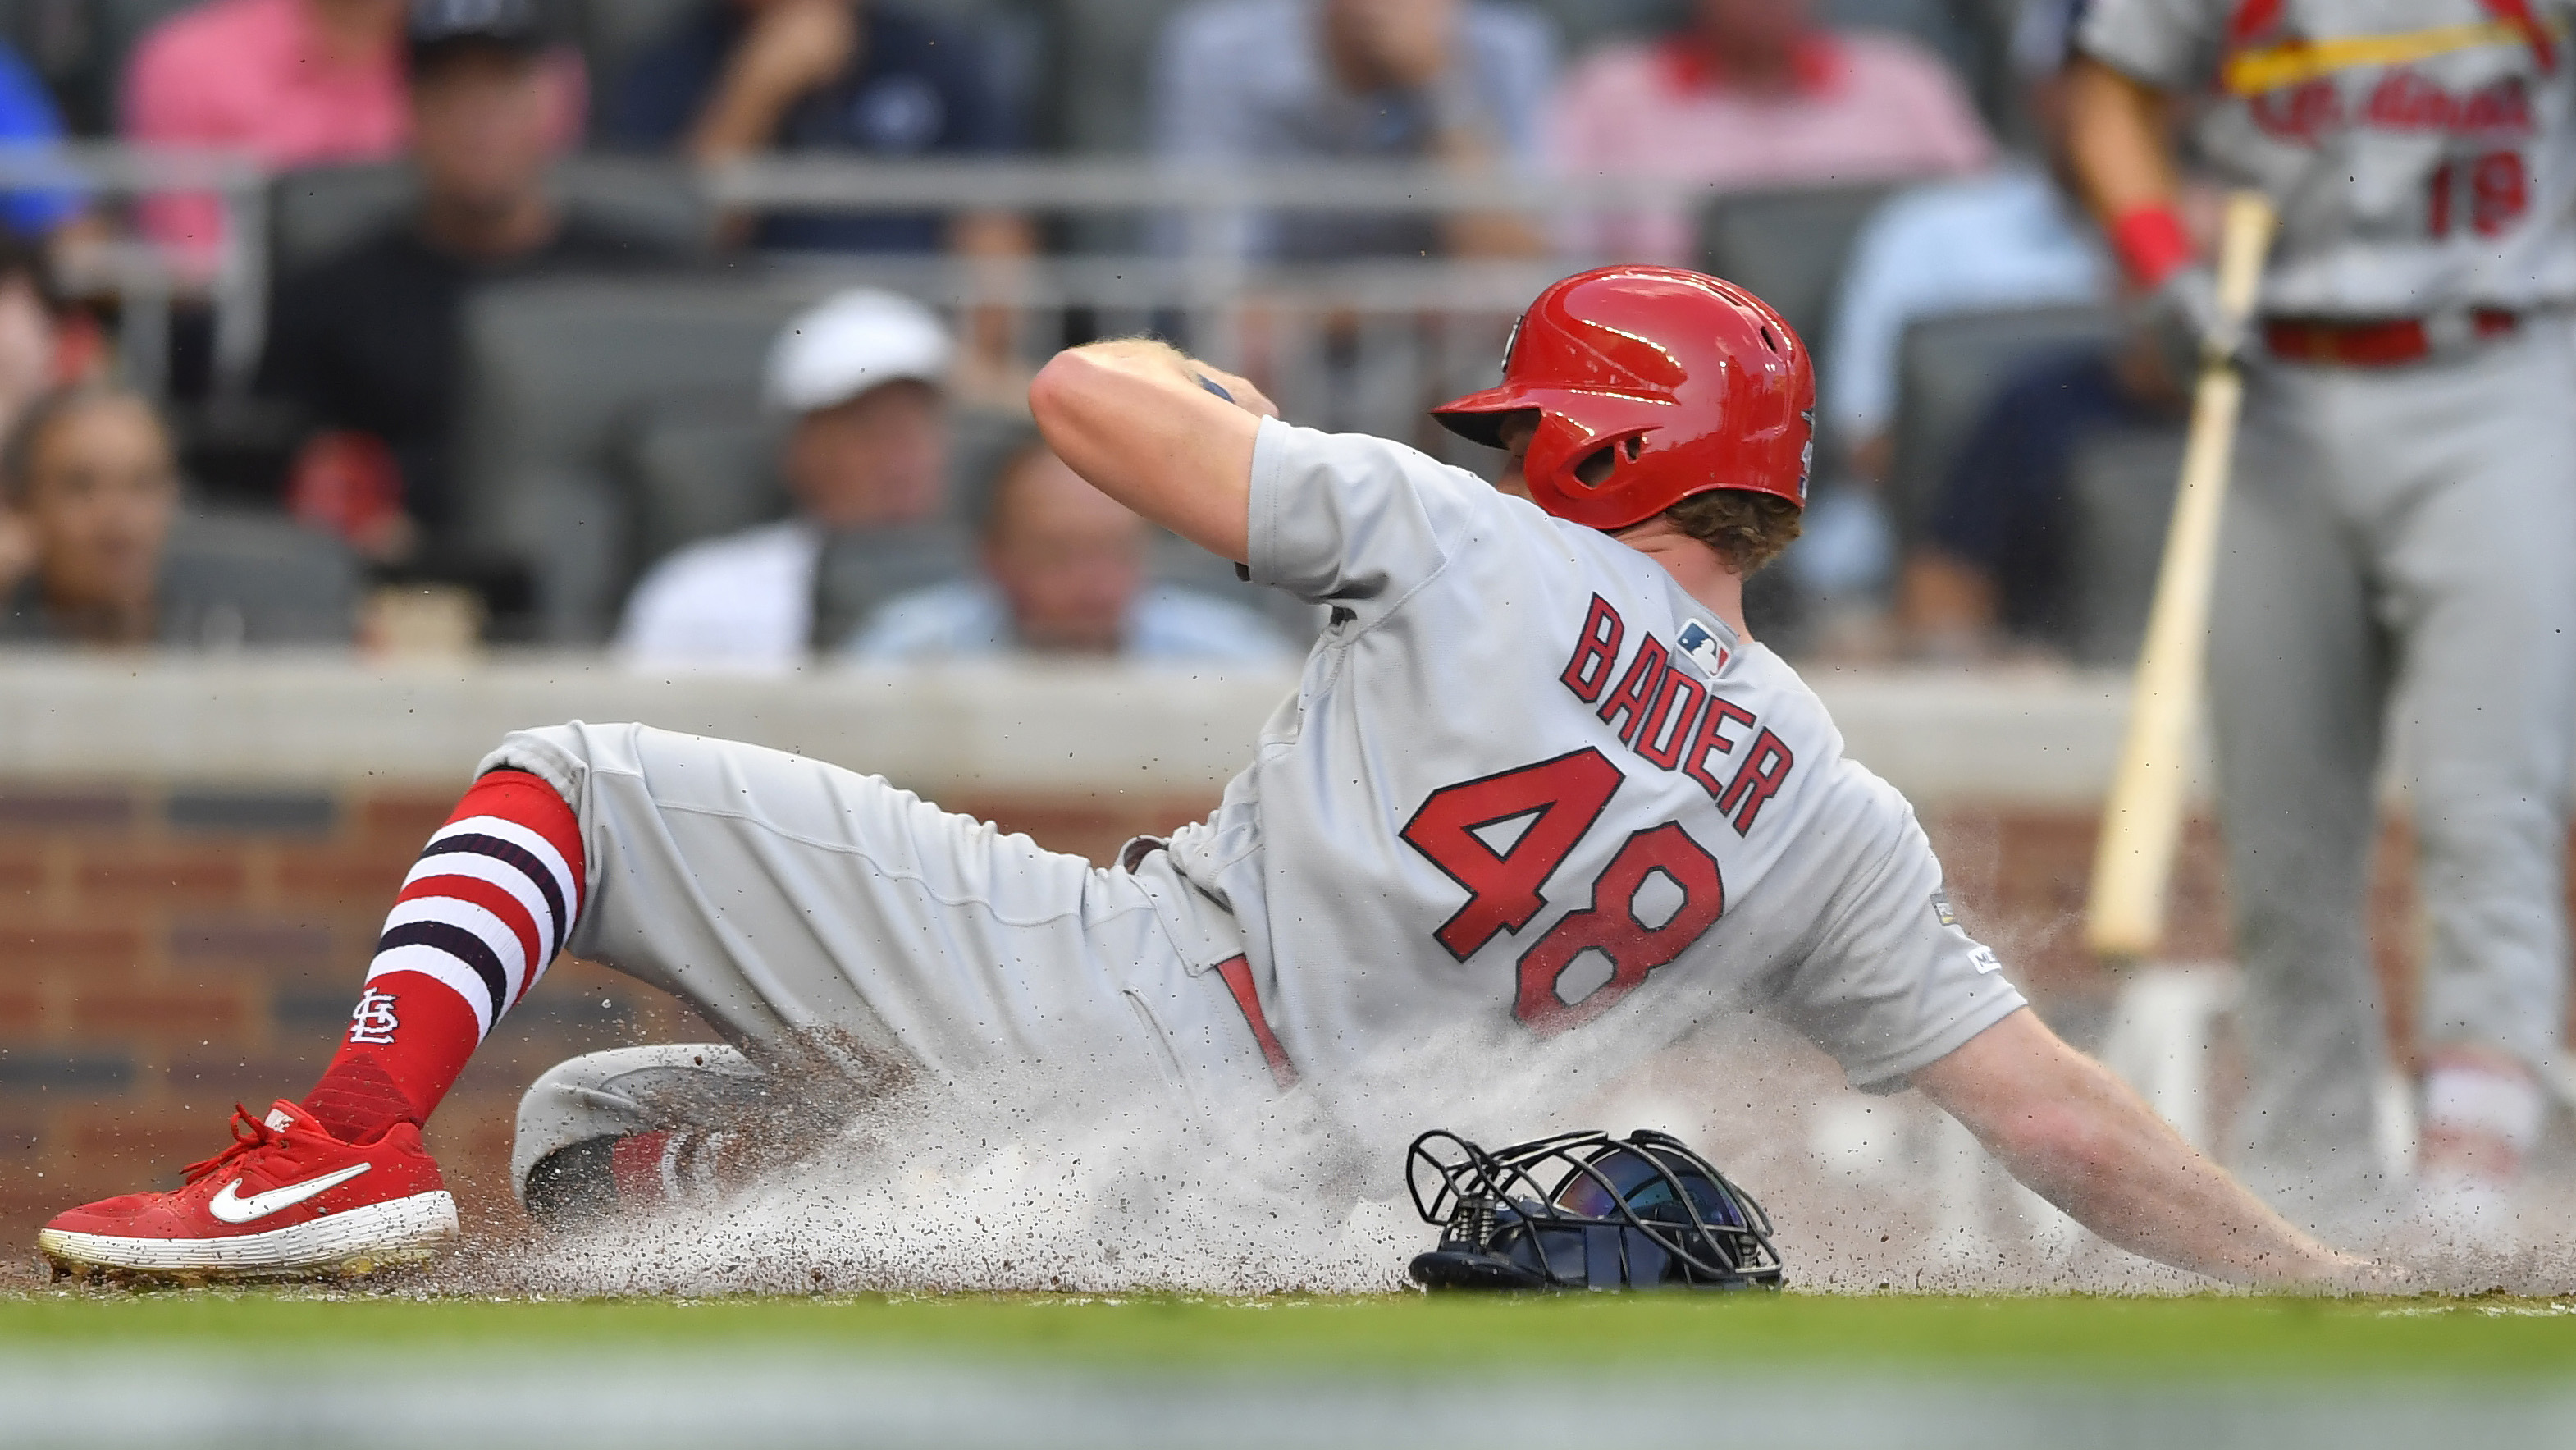 Fowler out, Bader in as Cards make several changes in Game 4 lineup